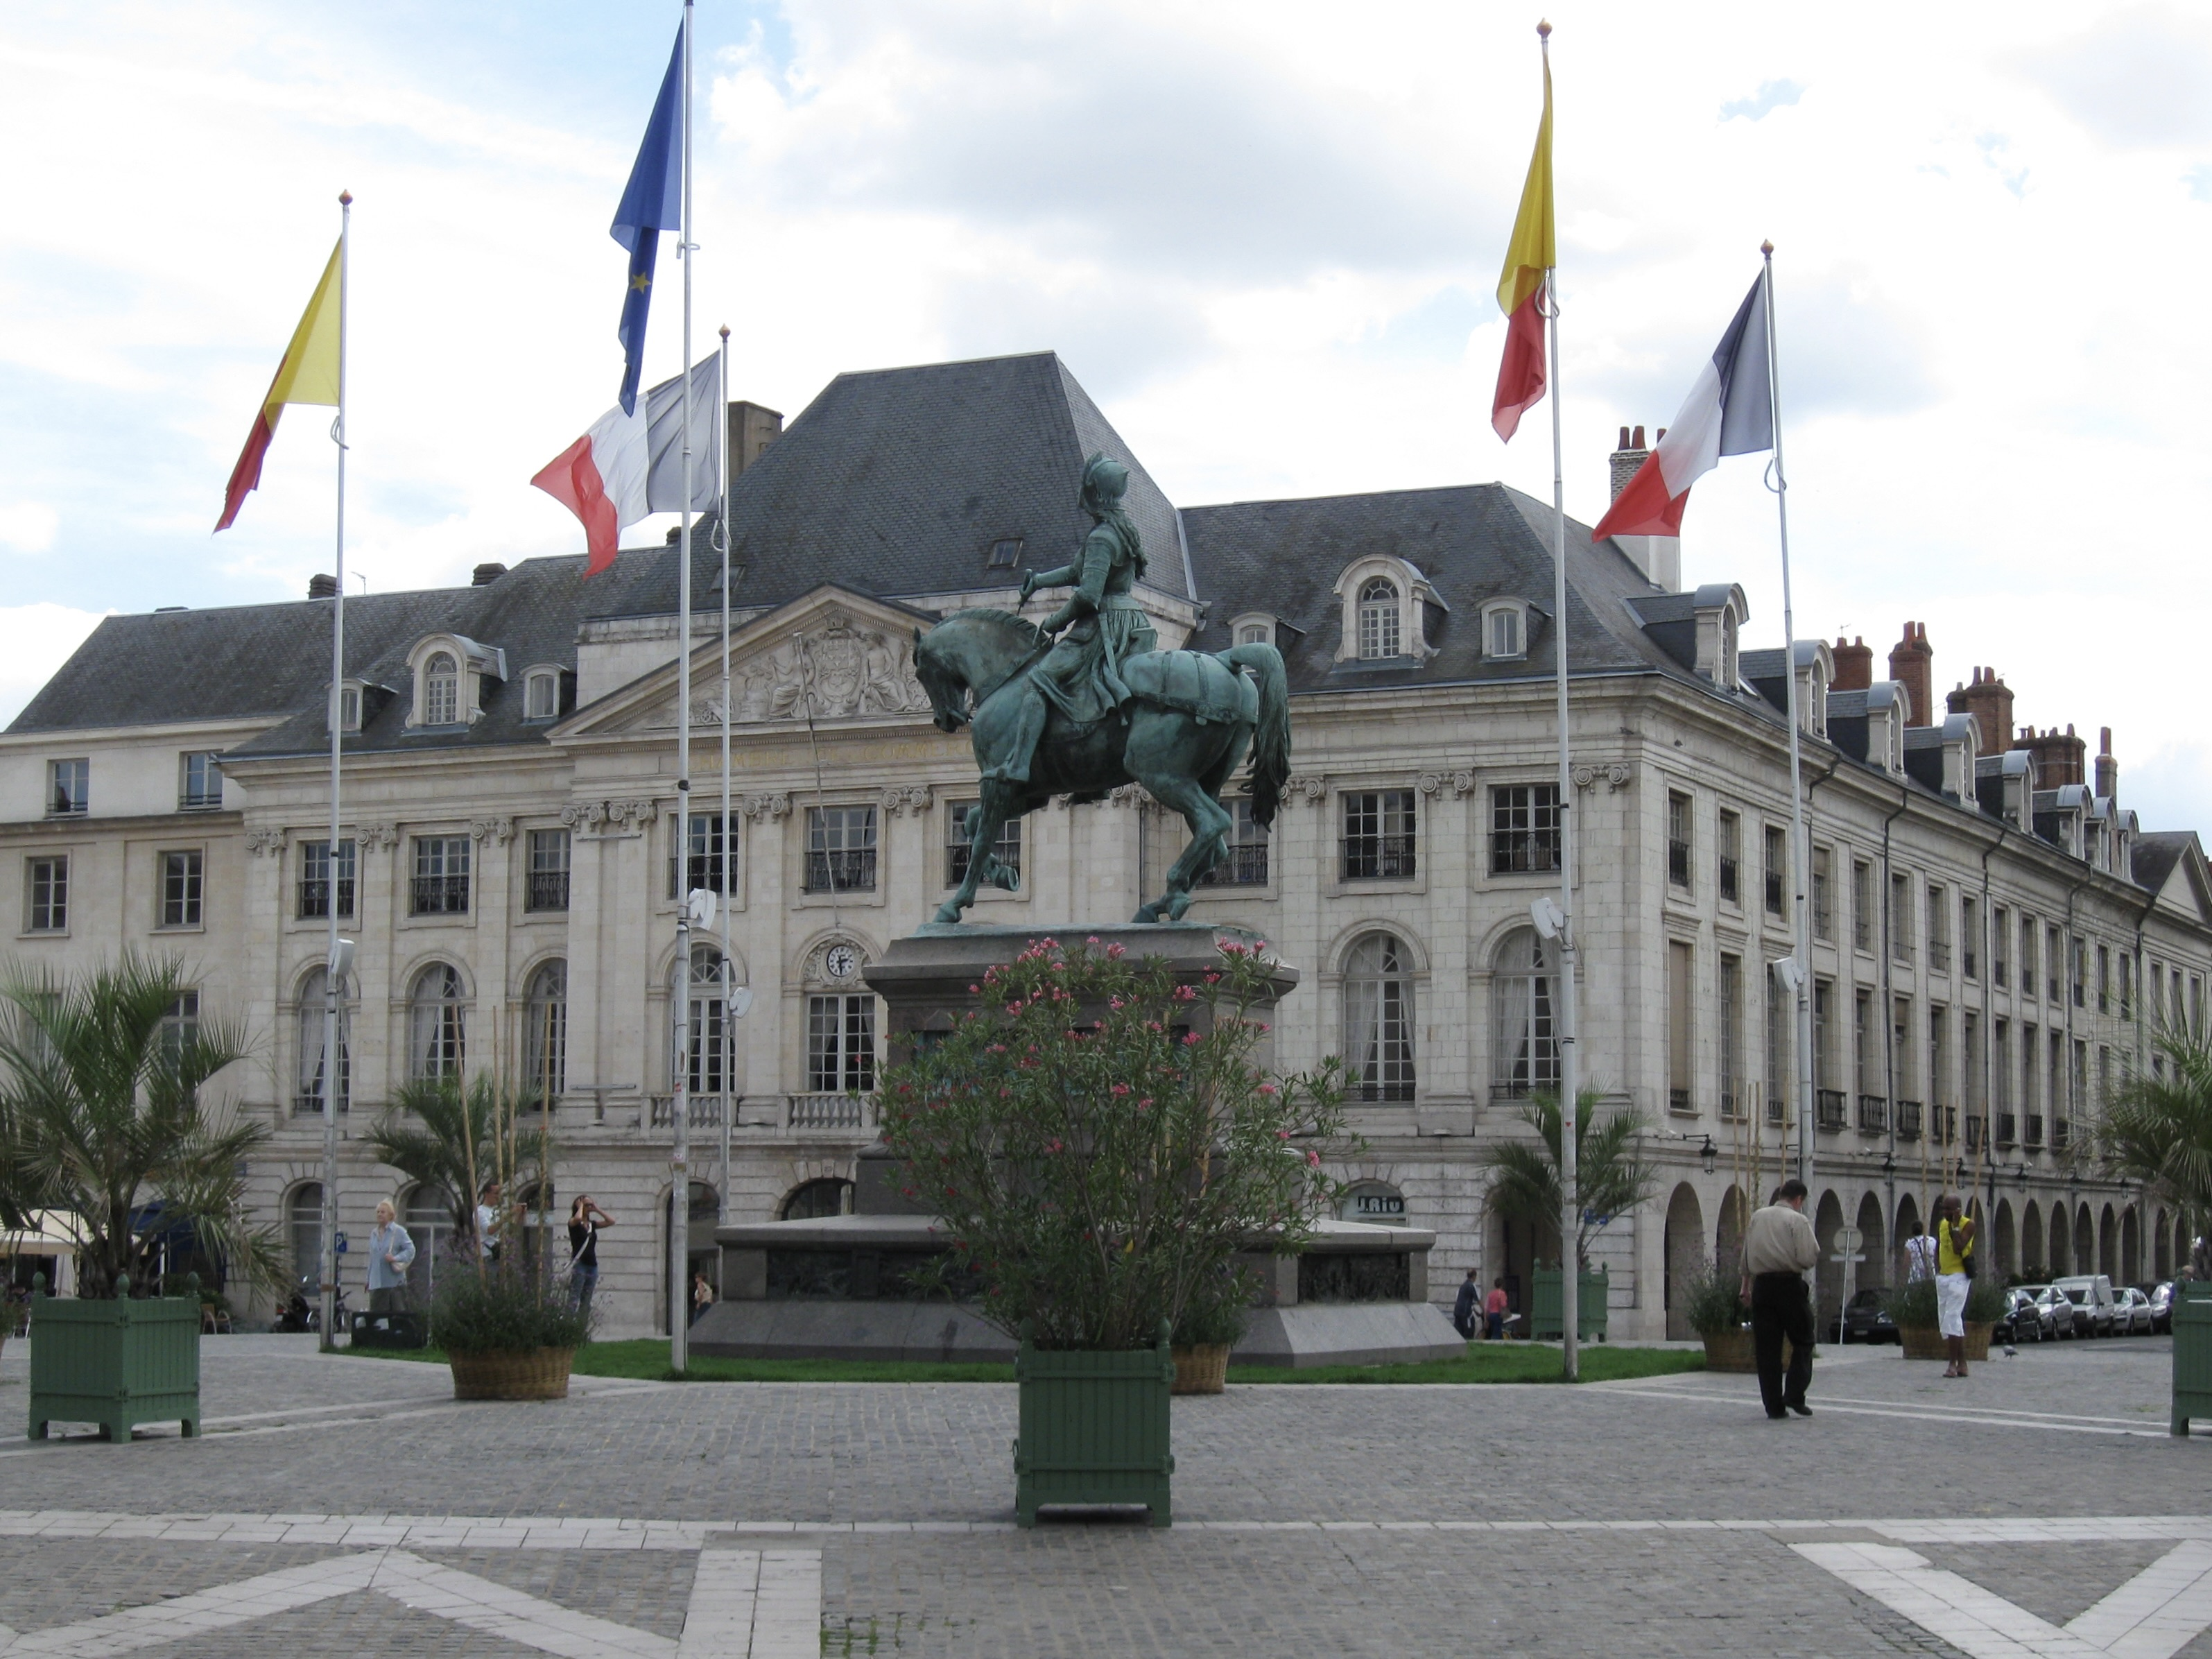 http://upload.wikimedia.org/wikipedia/commons/0/0d/Orl%C3%A9ans_place_du_Martroi_1.jpg